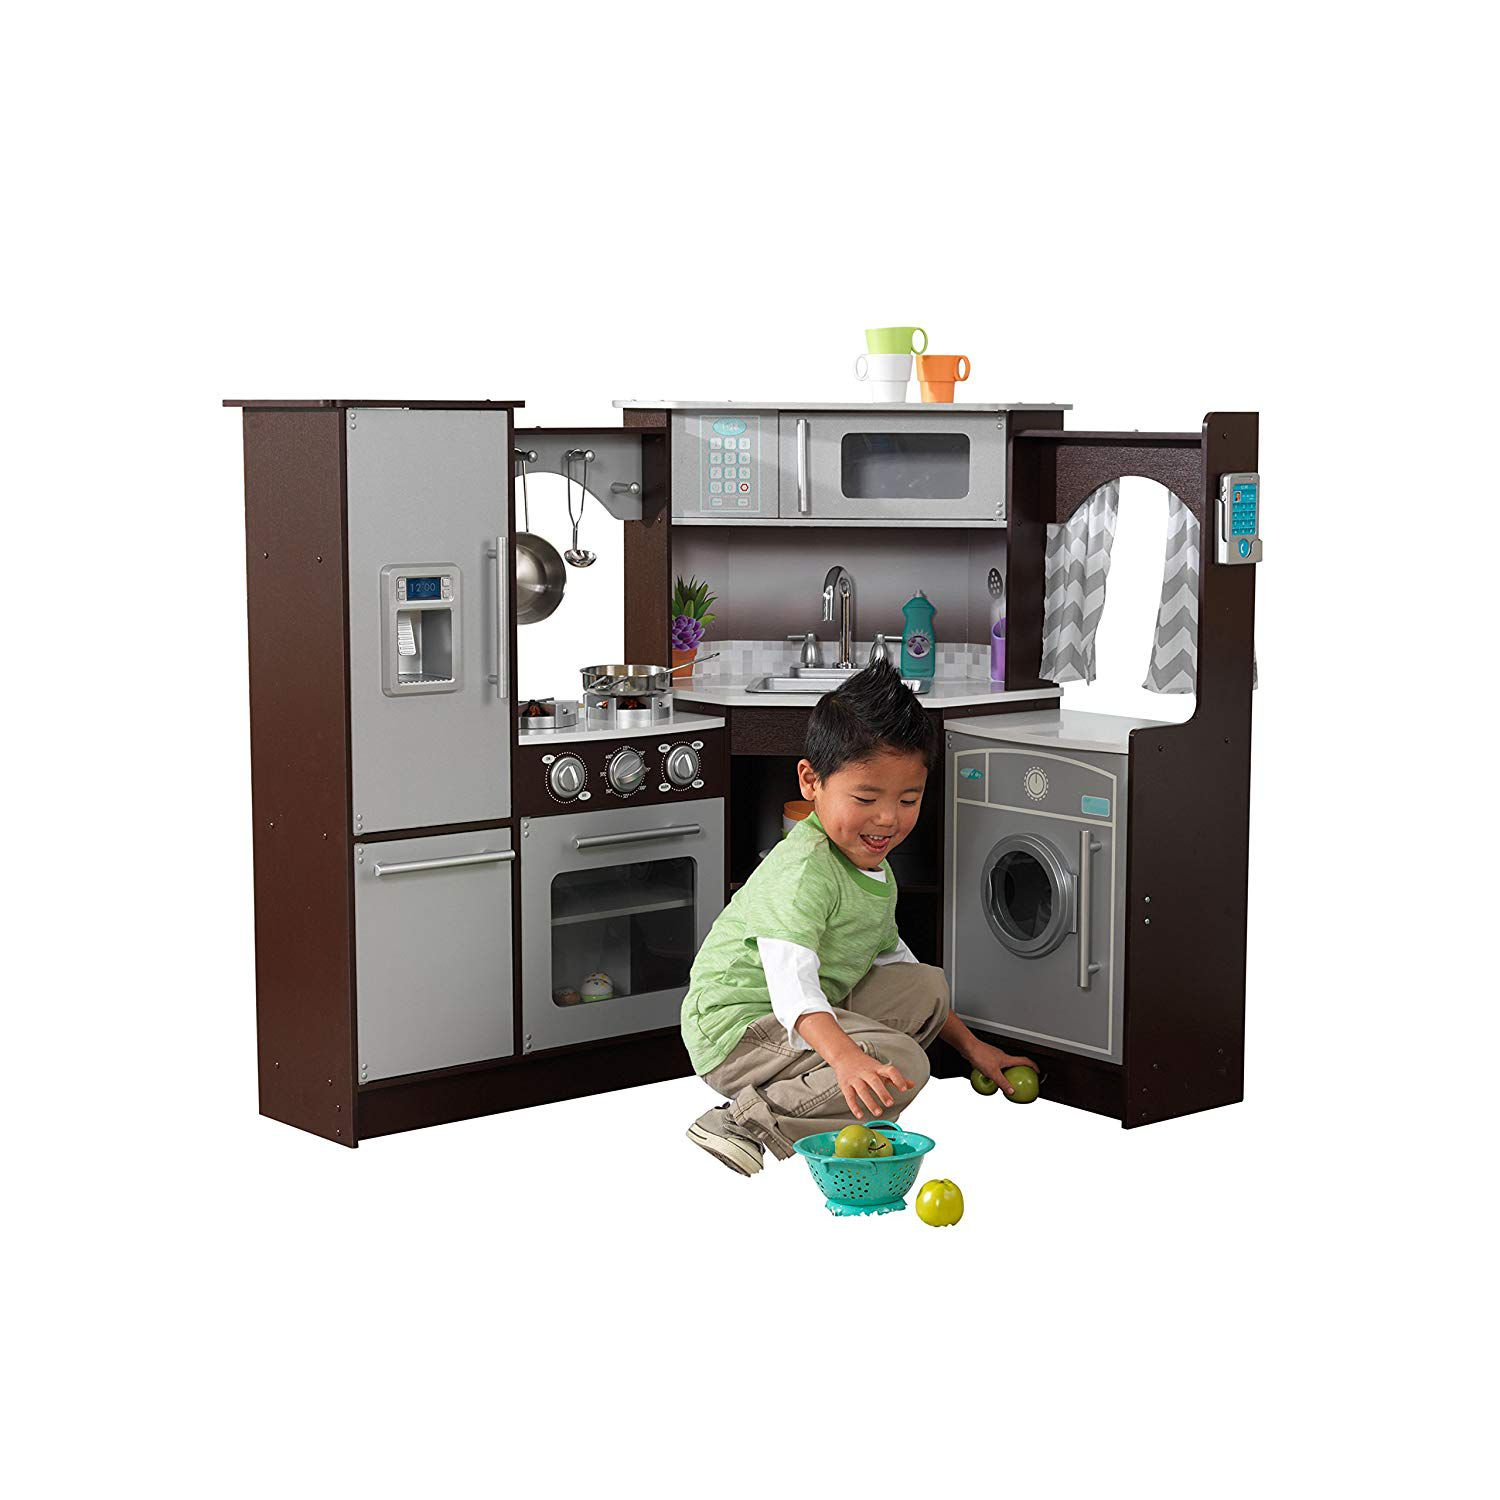 woman hates new kitchen The 10 Best Kitchen Sets For Kids In 2019